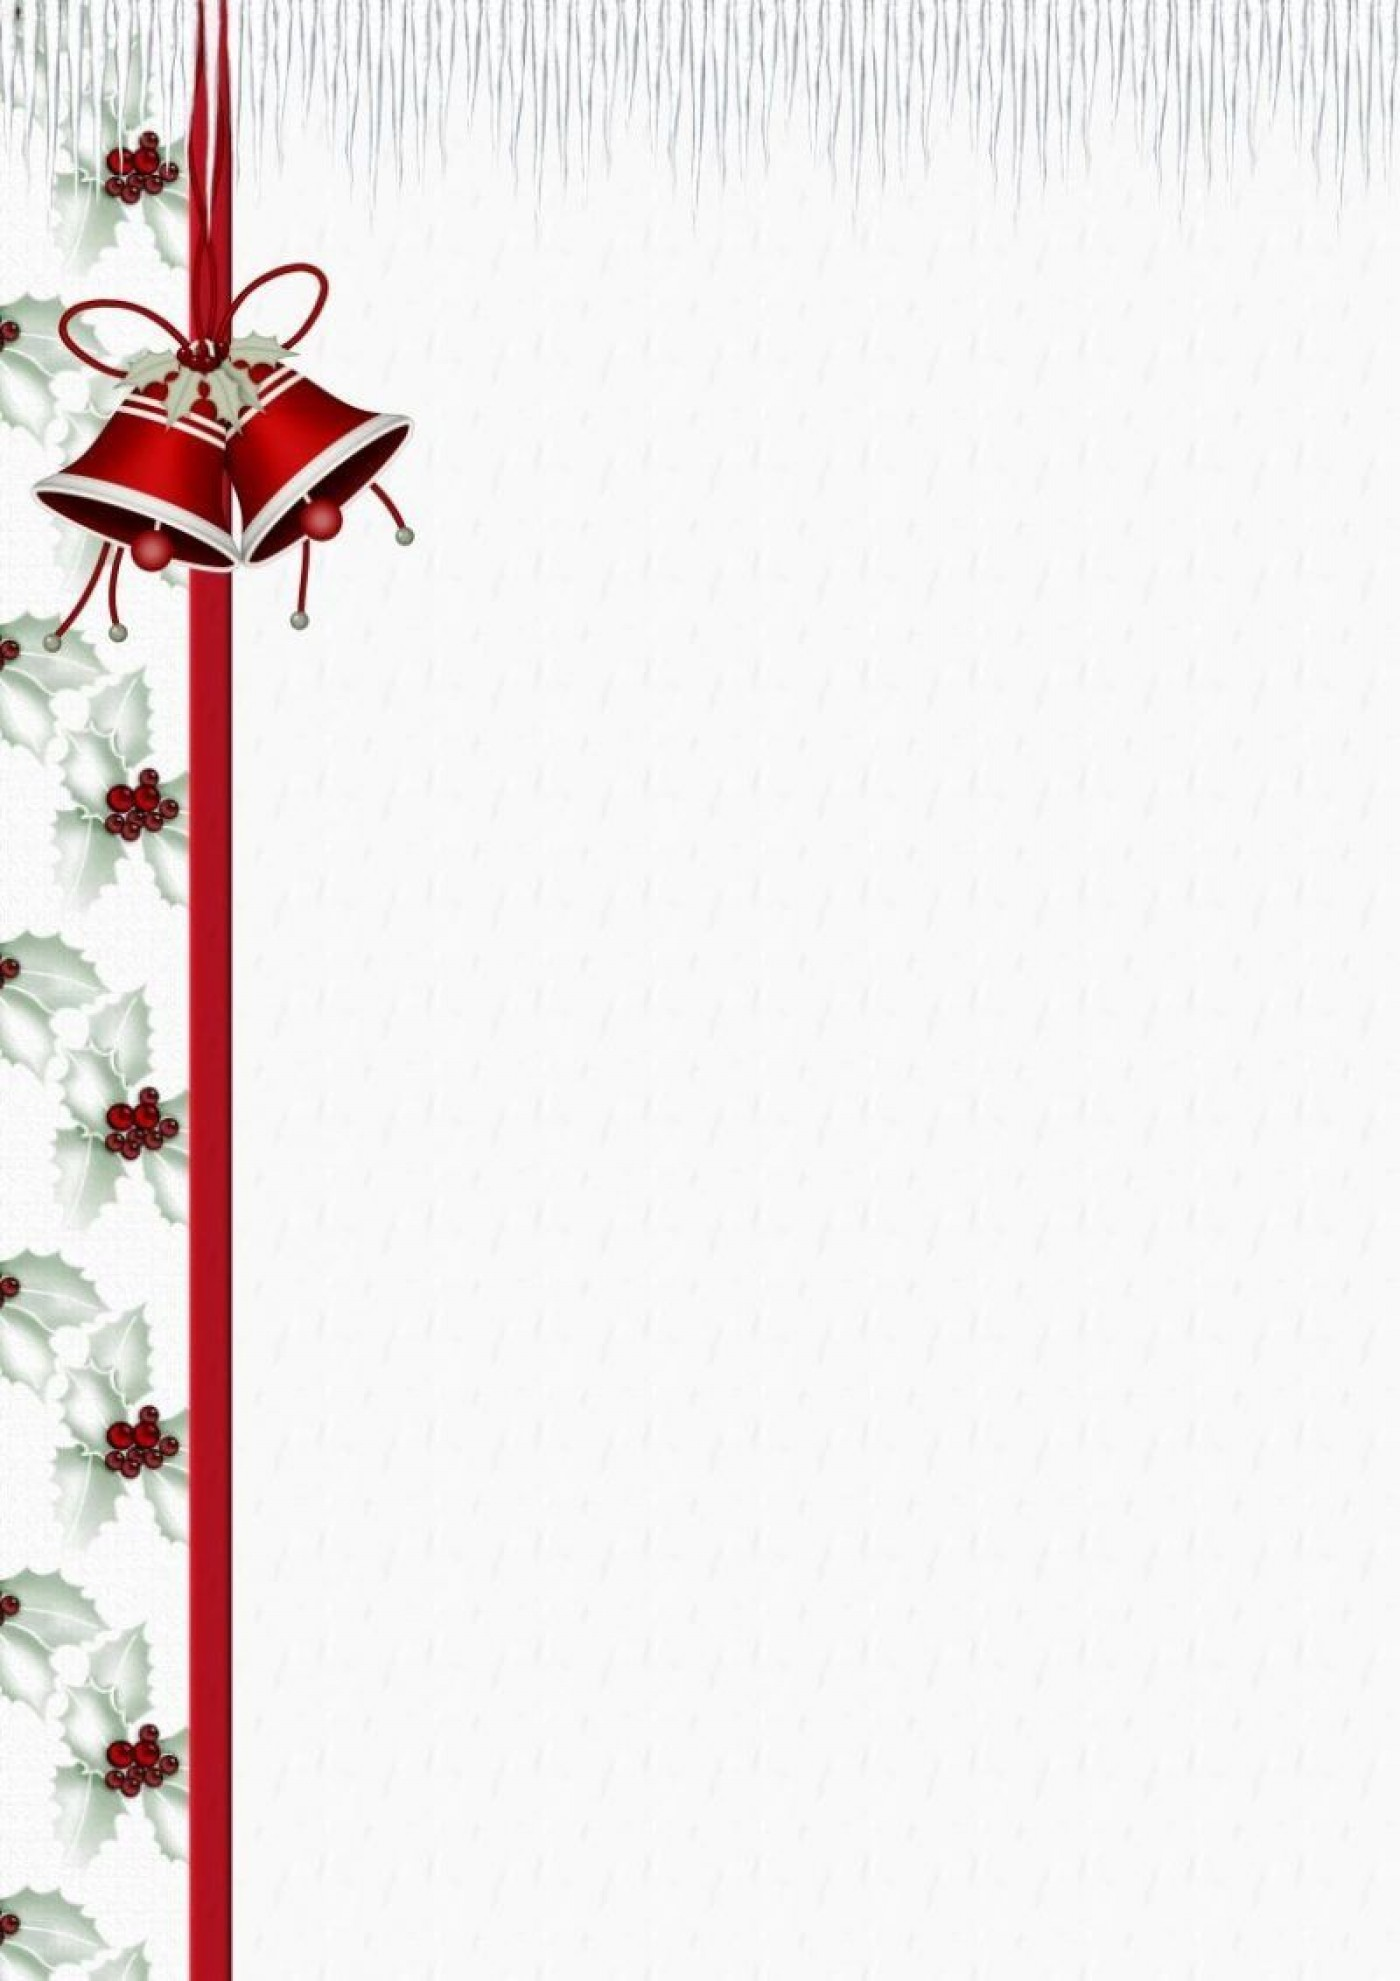 009 Formidable Christma Stationery Template Word Free Concept  Religiou For Downloadable1400